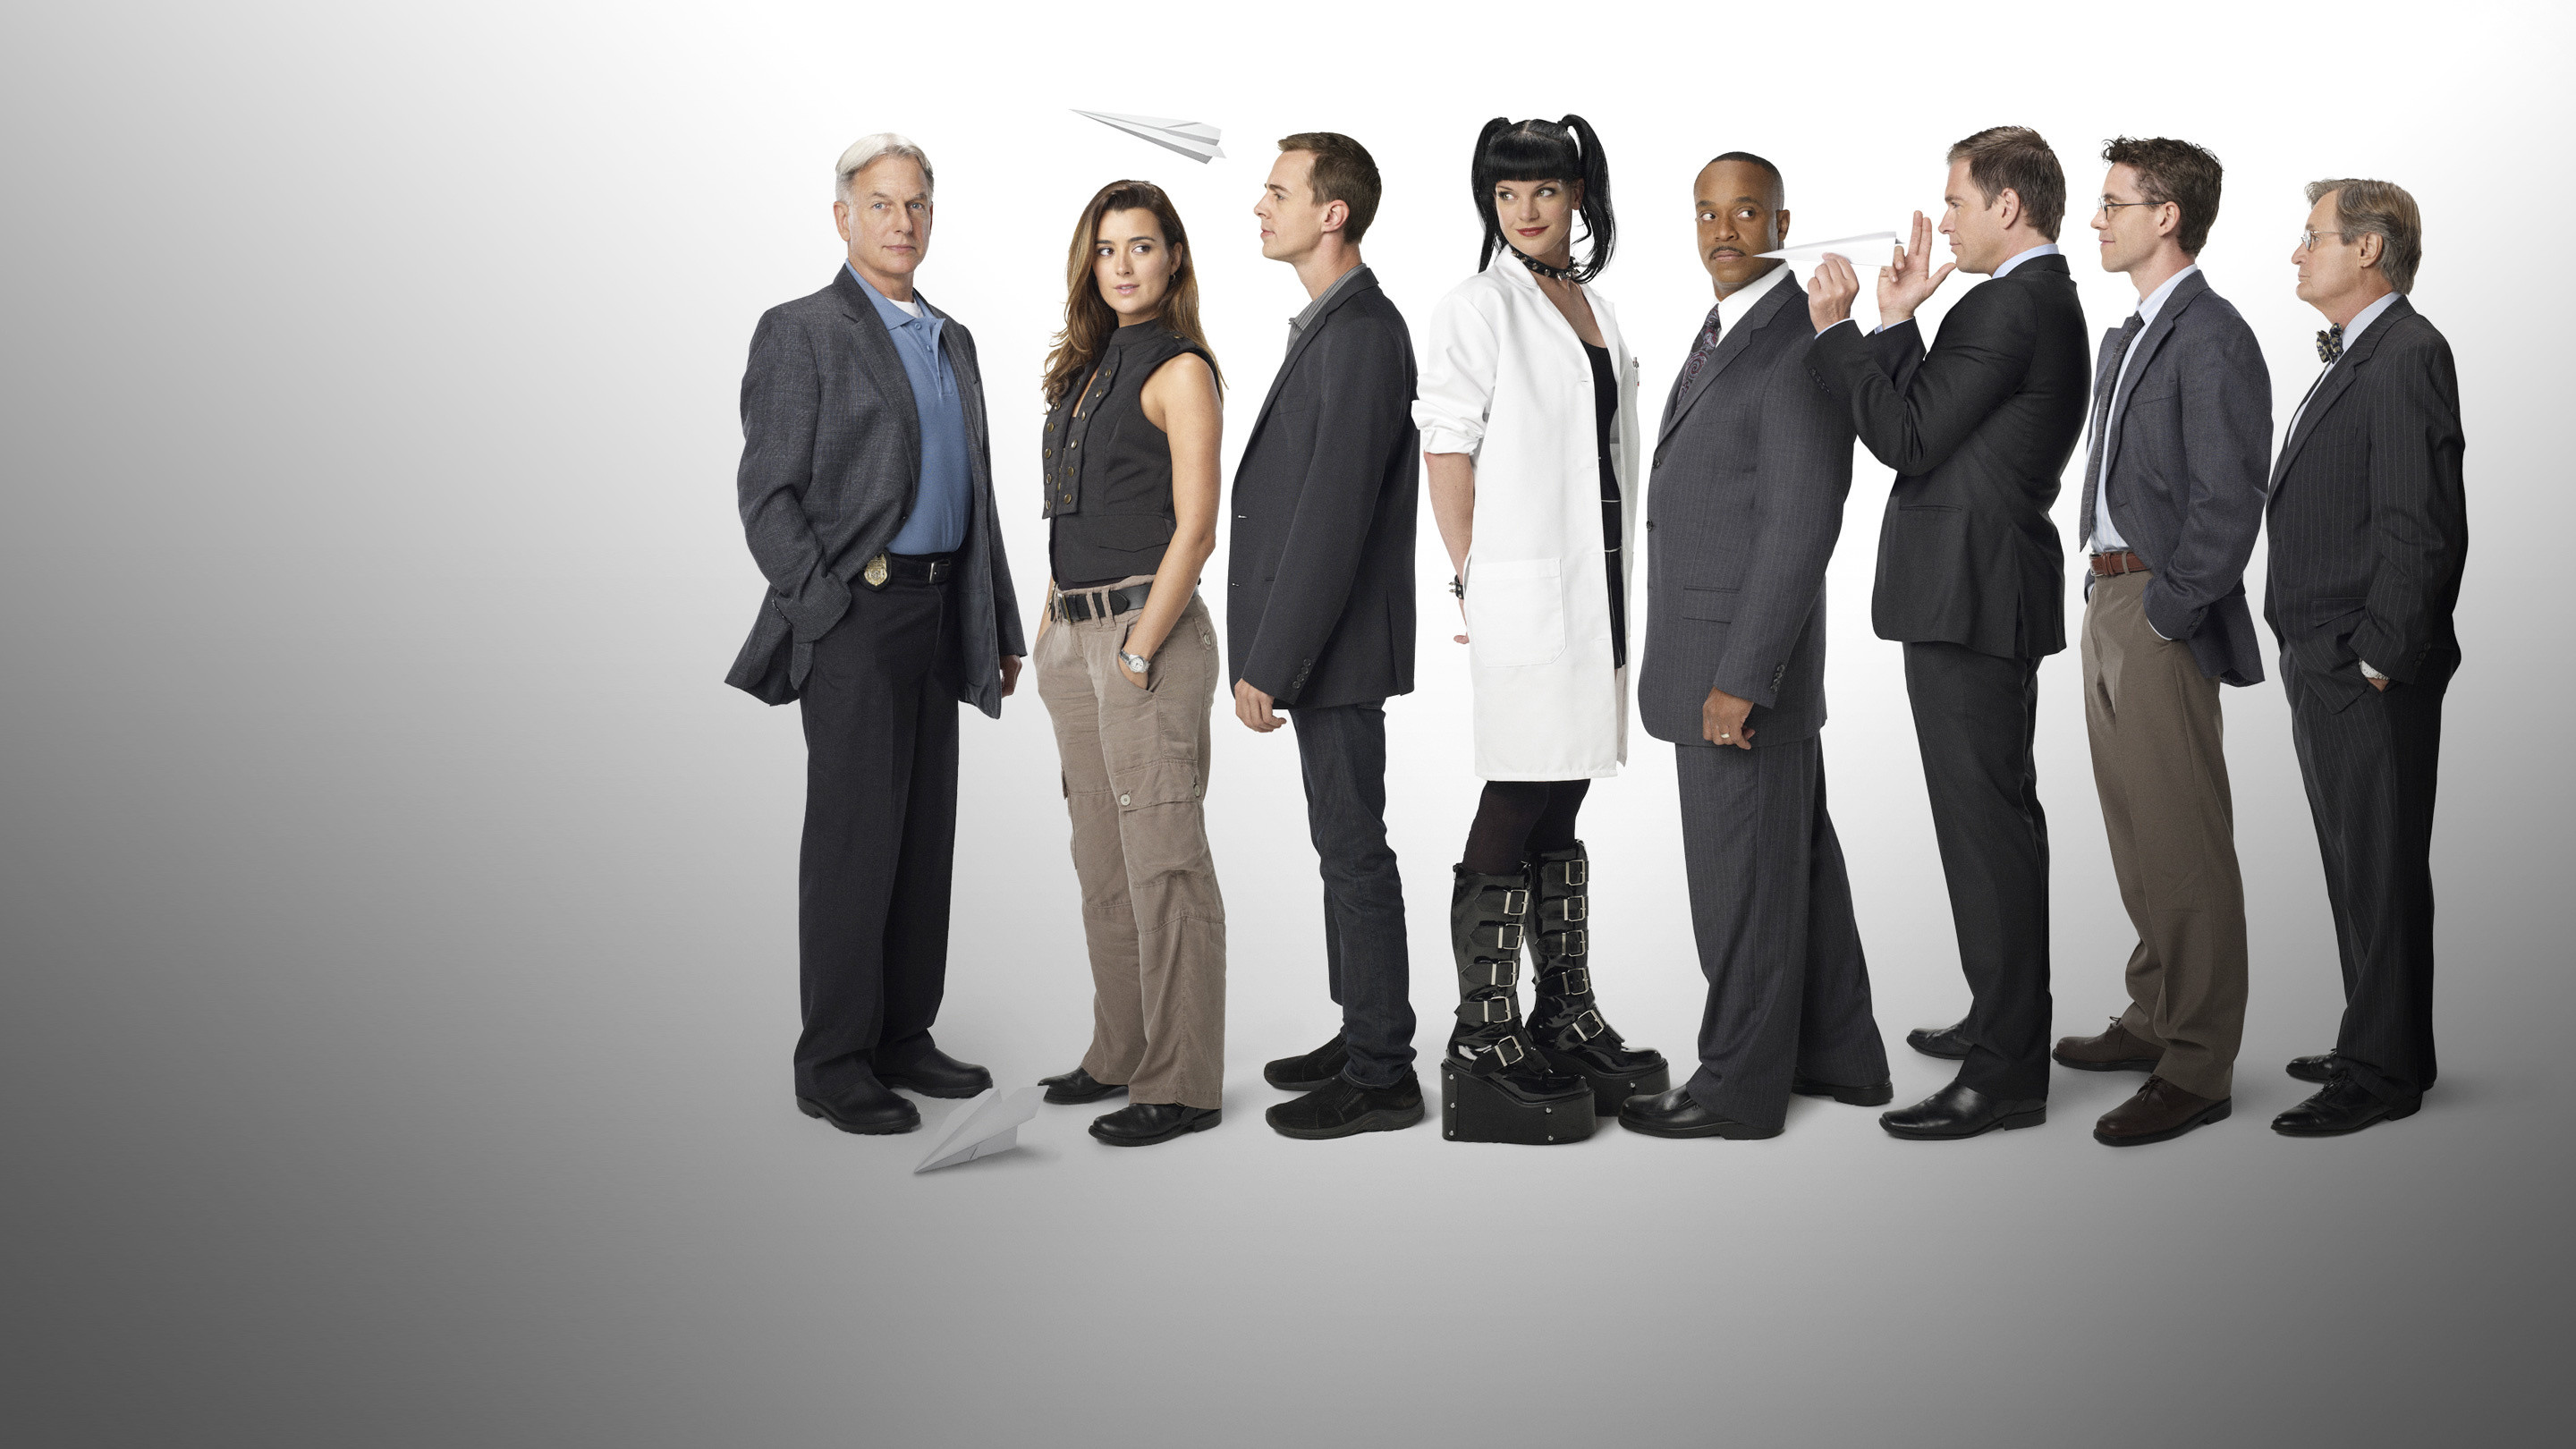 Ncis Wallpaper Wallpapertag